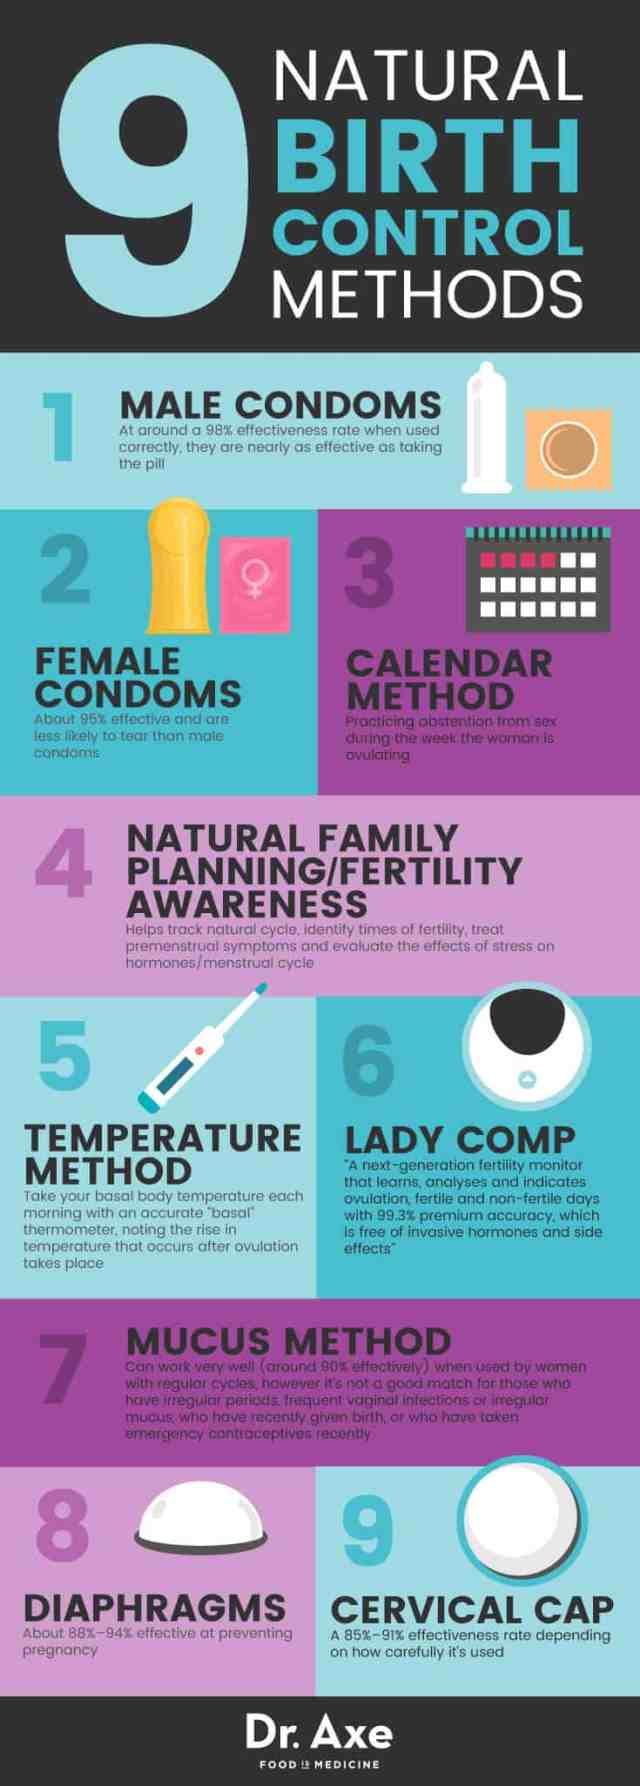 Natural Birth Control Methods Dr Axe